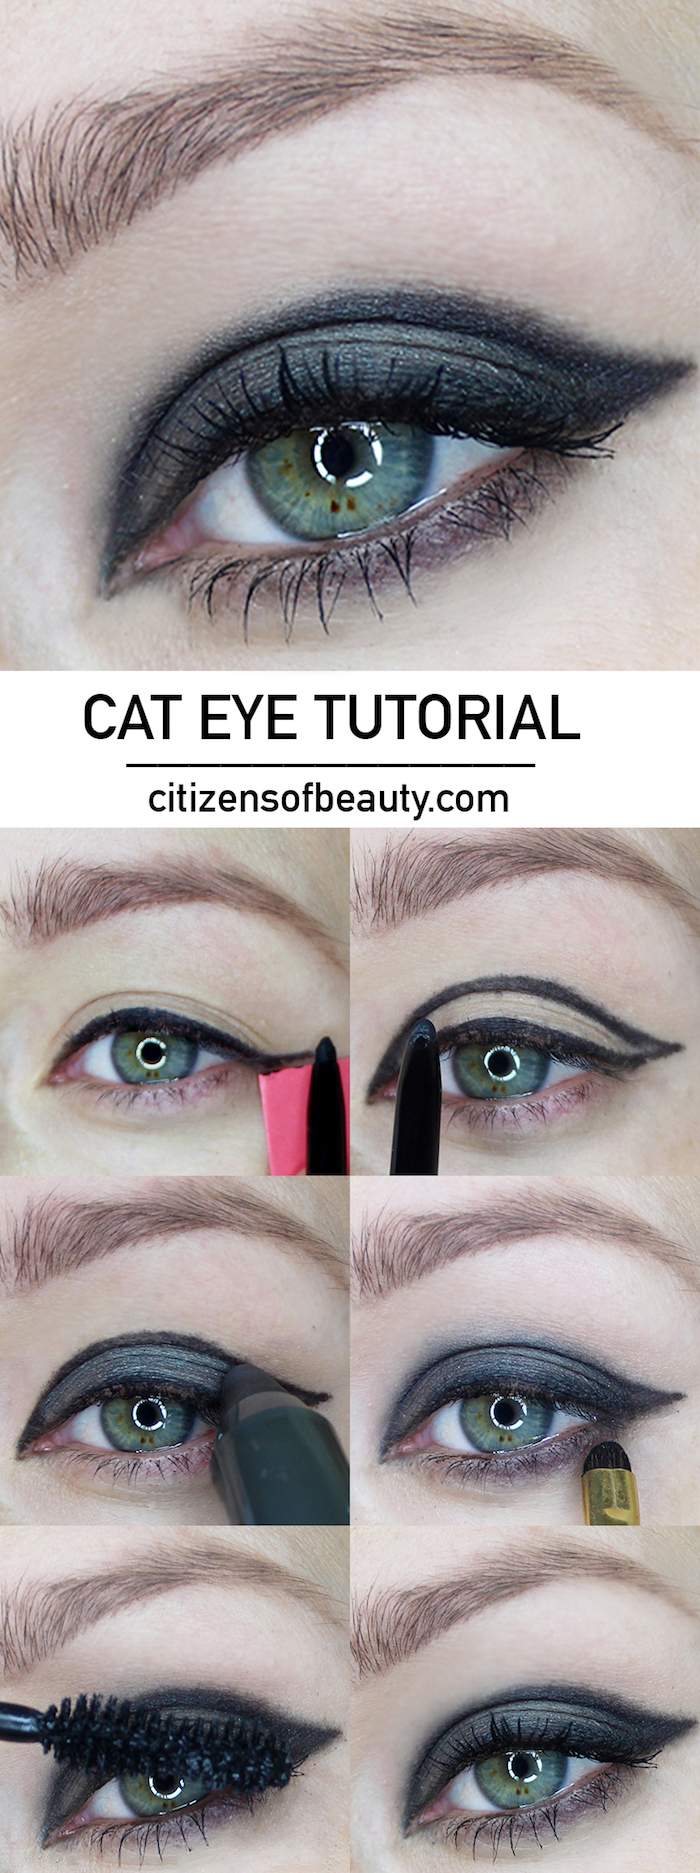 photo collage of step by step cat eye tutorial in six steps winged eyeliner tutorial on woman with green eyes